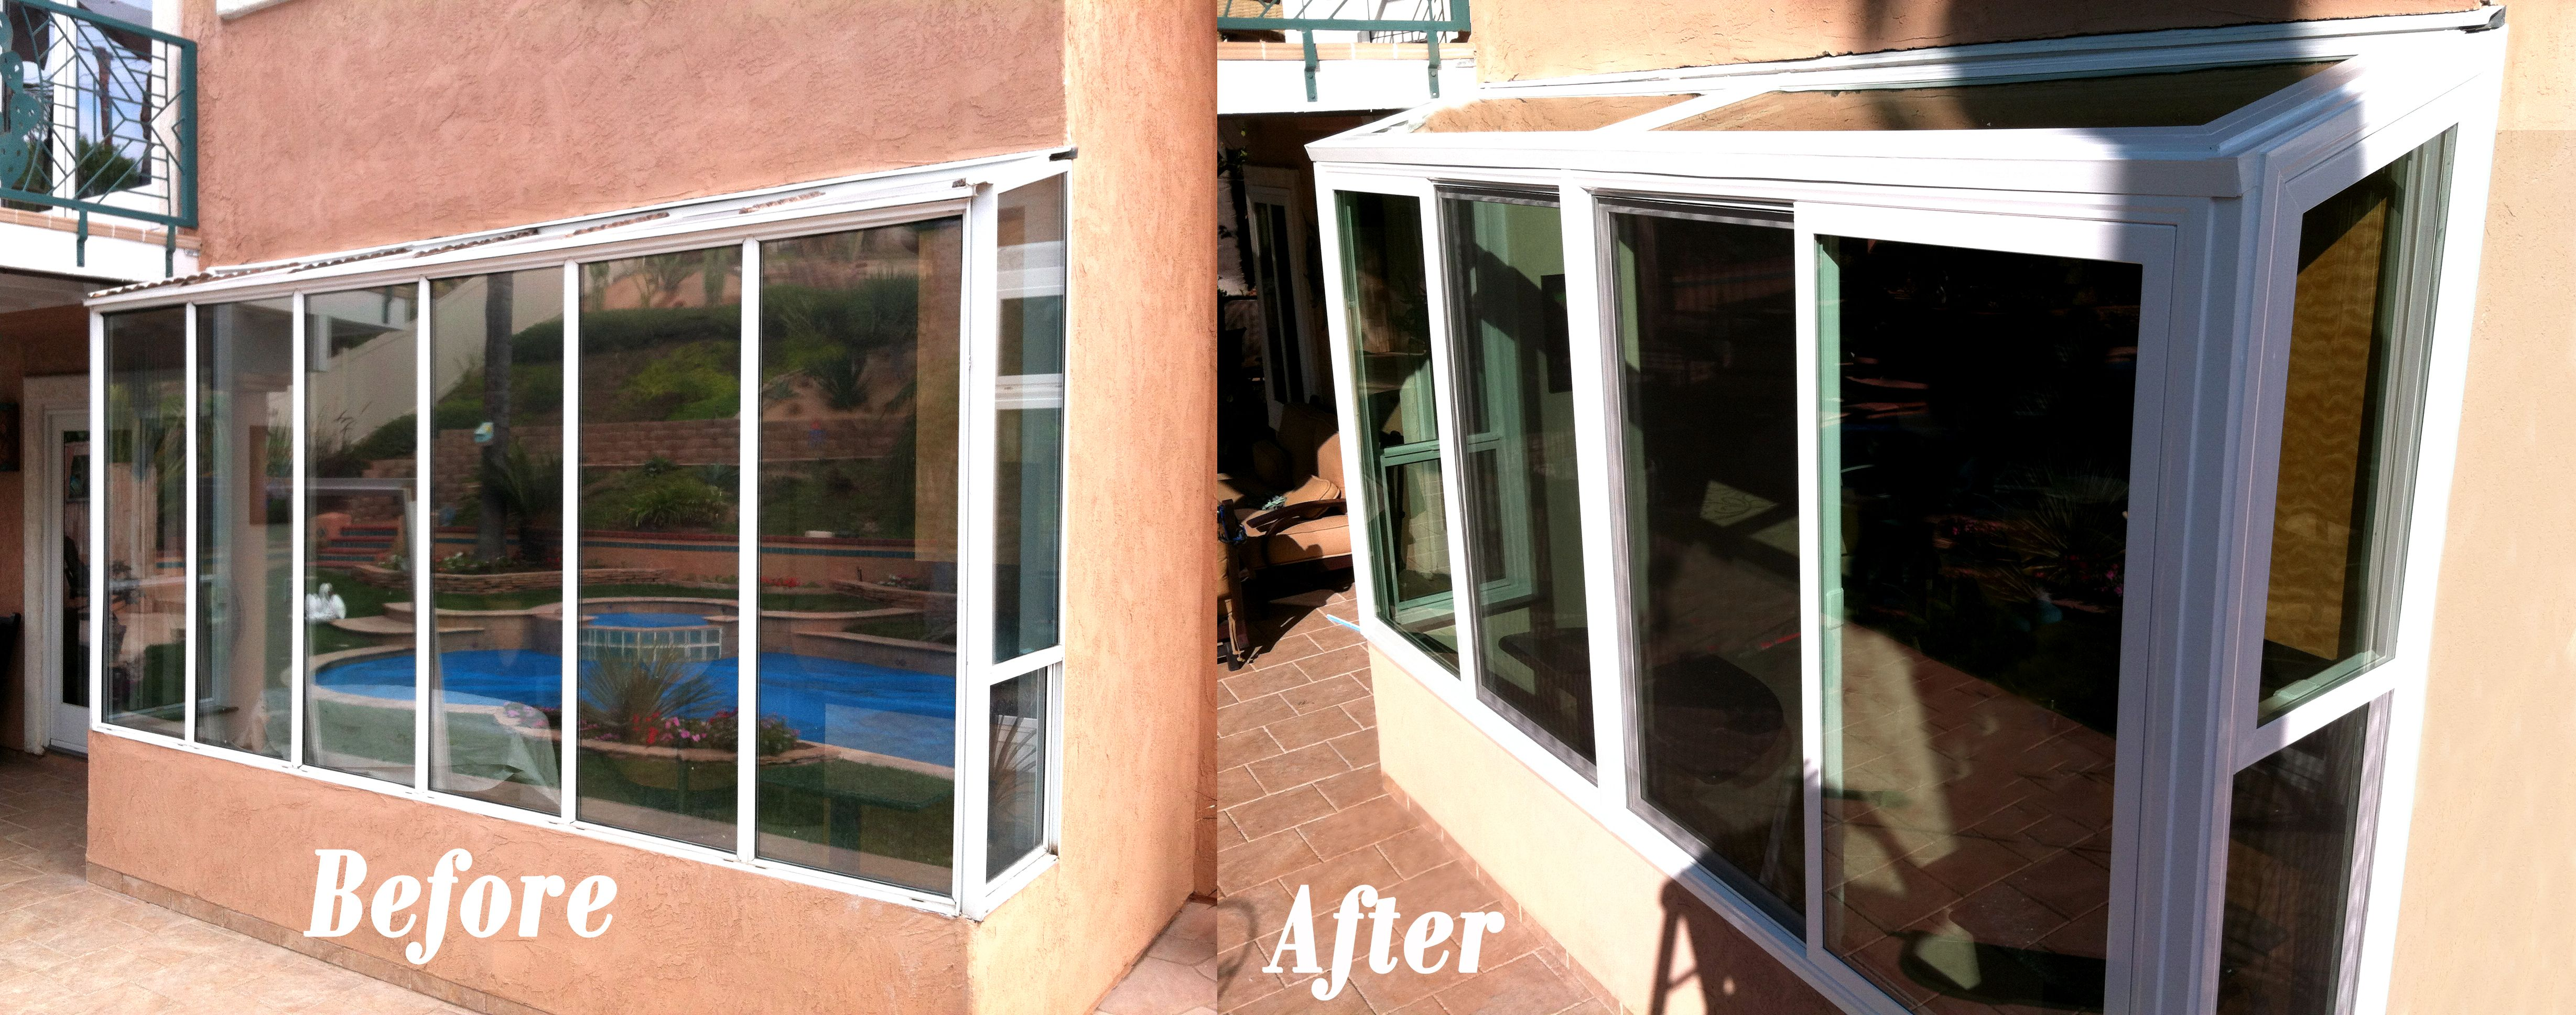 Before And After Photo Of A Tuscany Vinyl Atrium Window Replacement In Oceanside Ca Windows Atrium Windows Windows And Doors